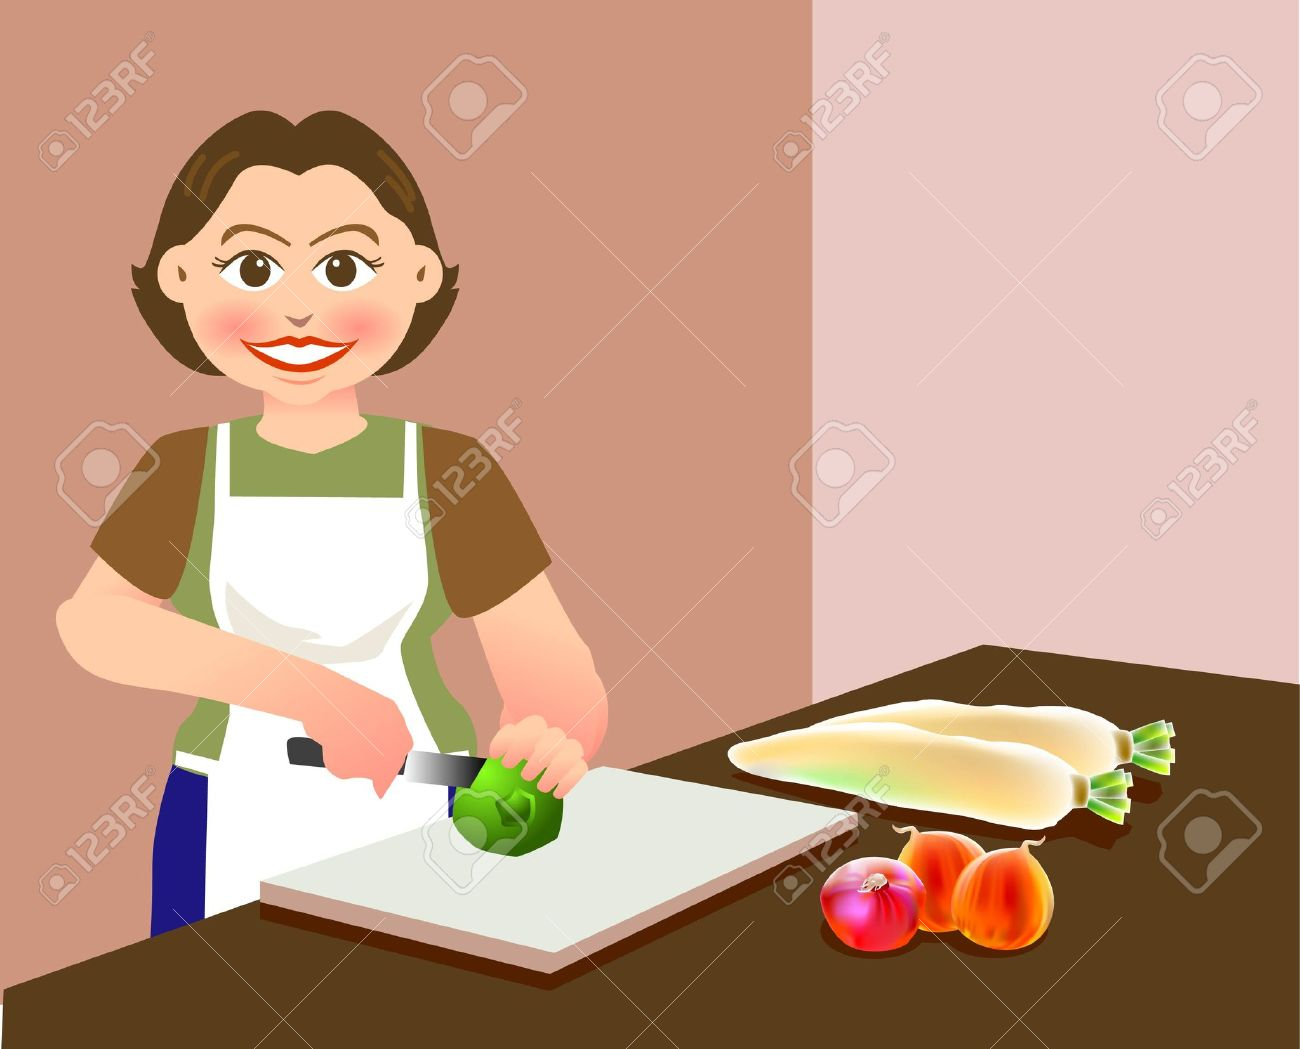 Clipart preparing food.